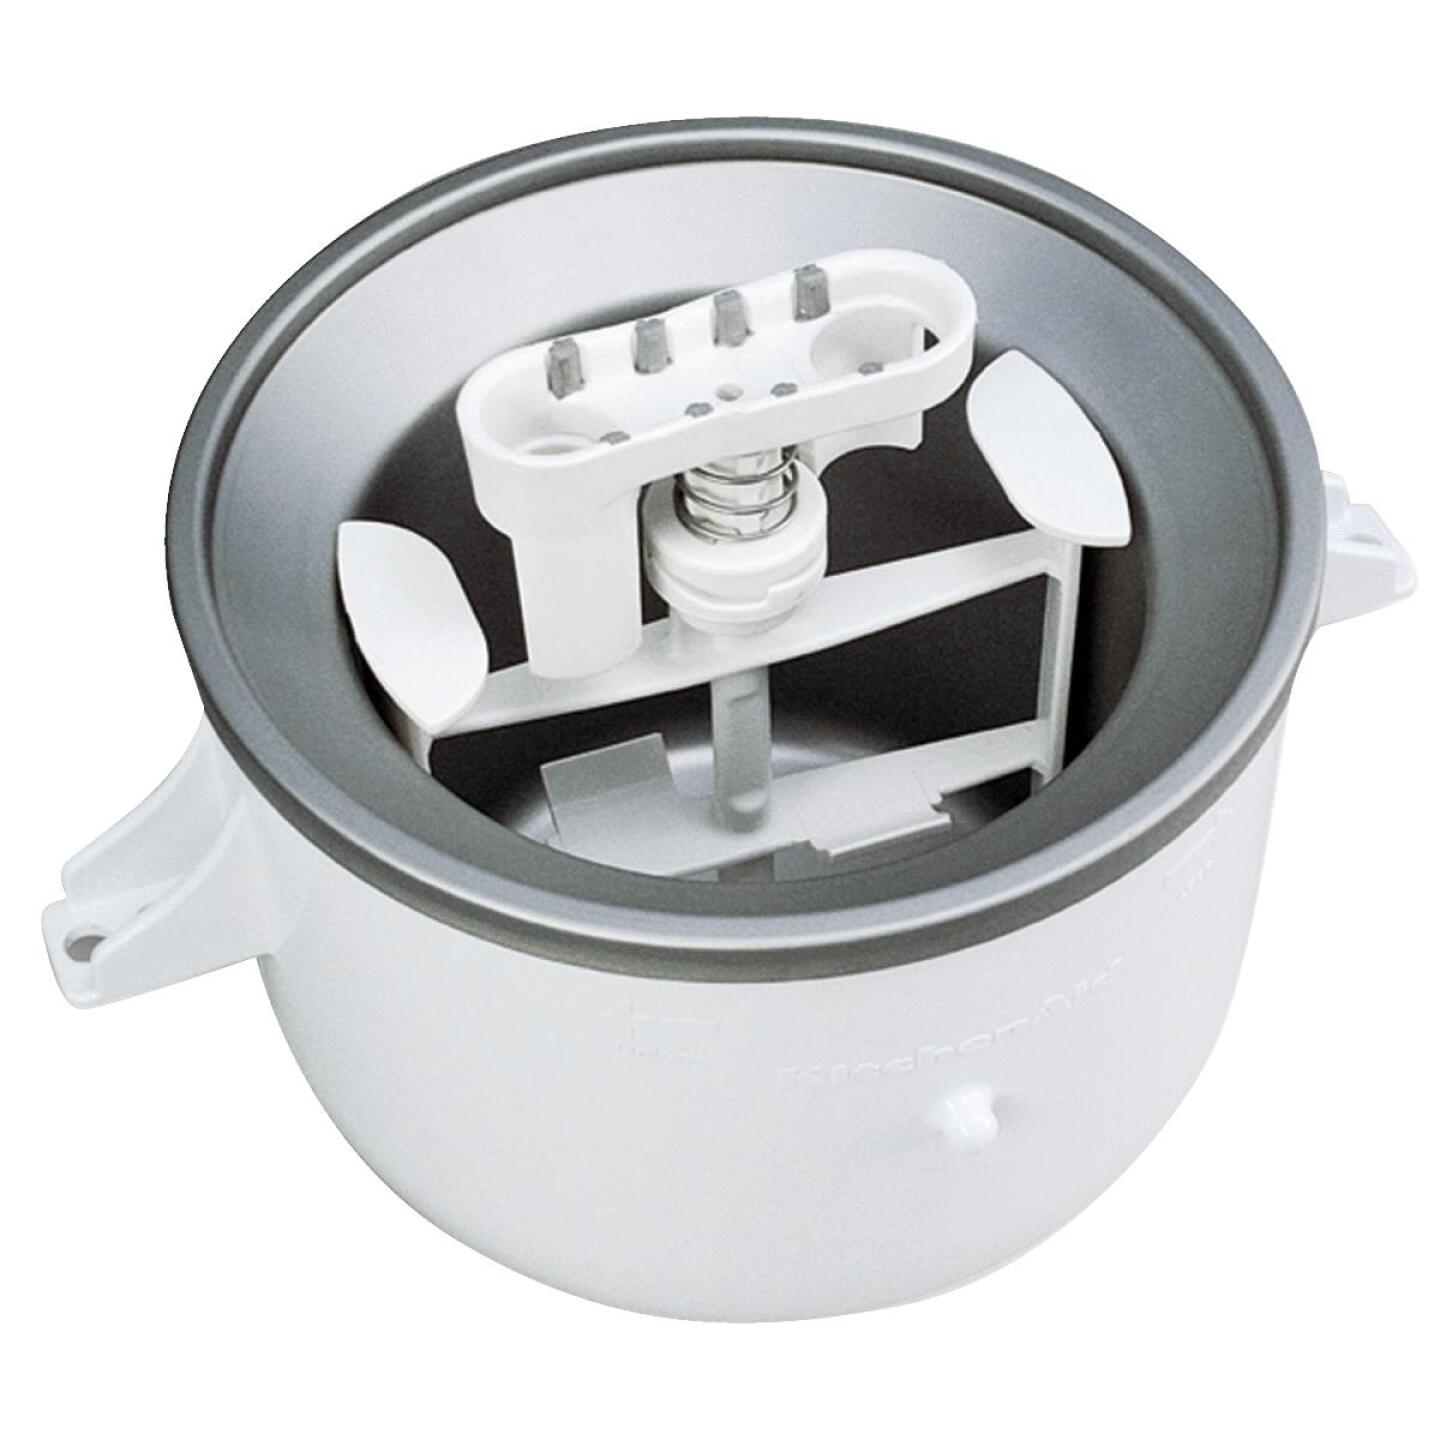 KitchenAid Ice Cream Maker Attachment Image 1